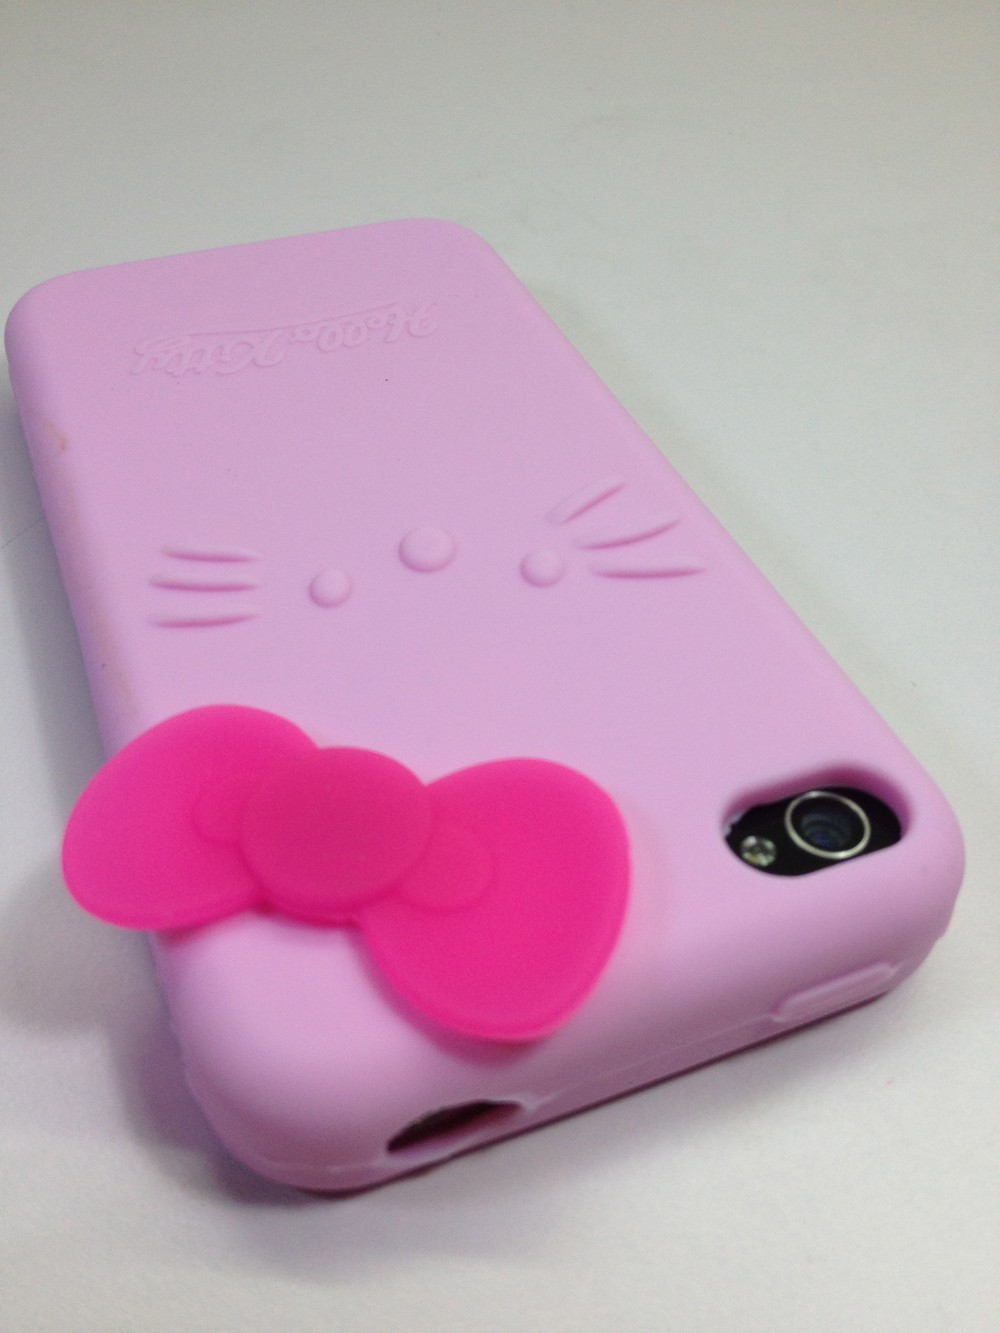 Iphone cases tumblr hello kitty case in hello kitty pink